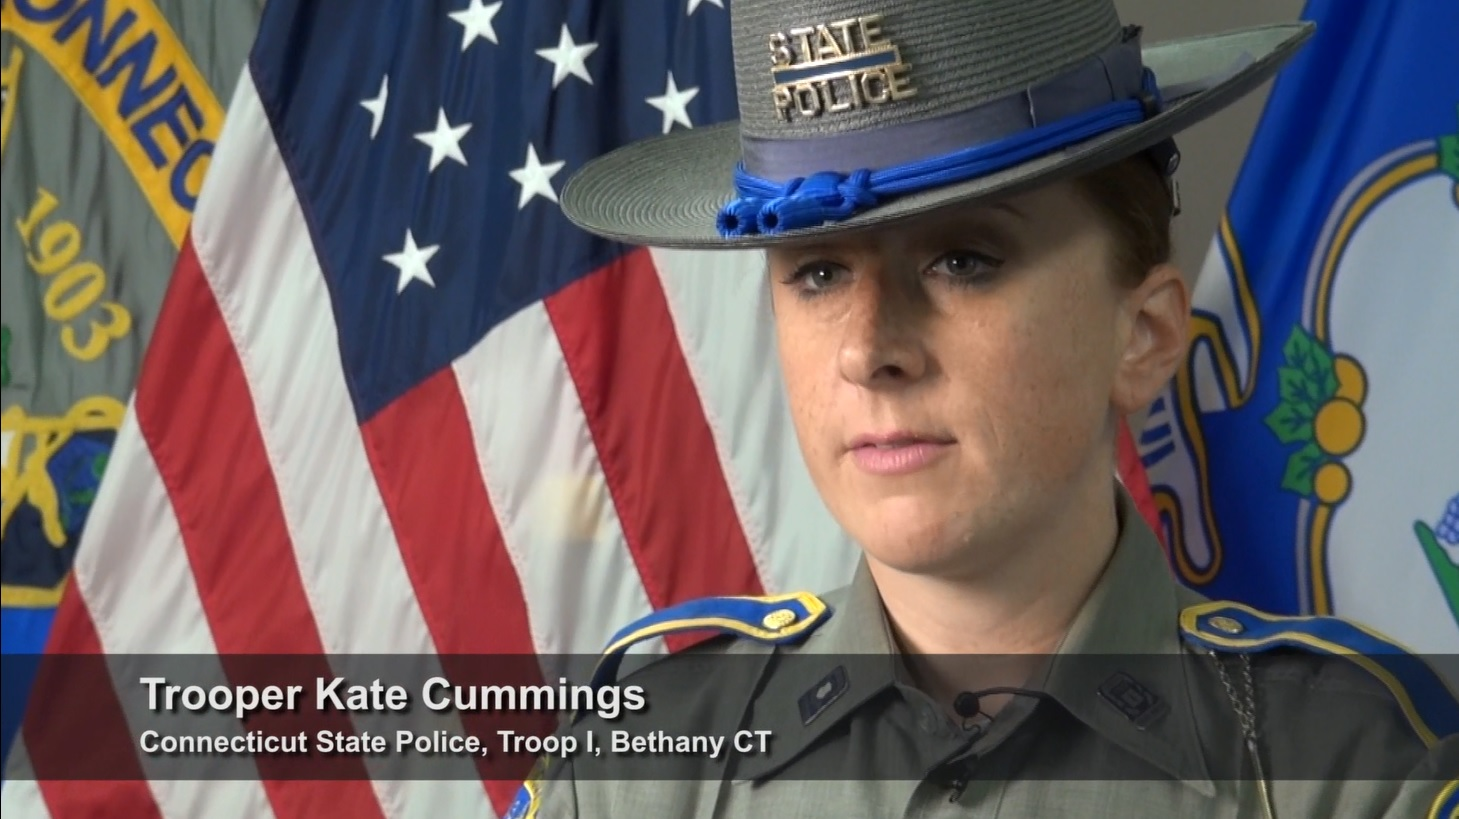 Trooper Kate Cummings talks about the consequences of underage drinking